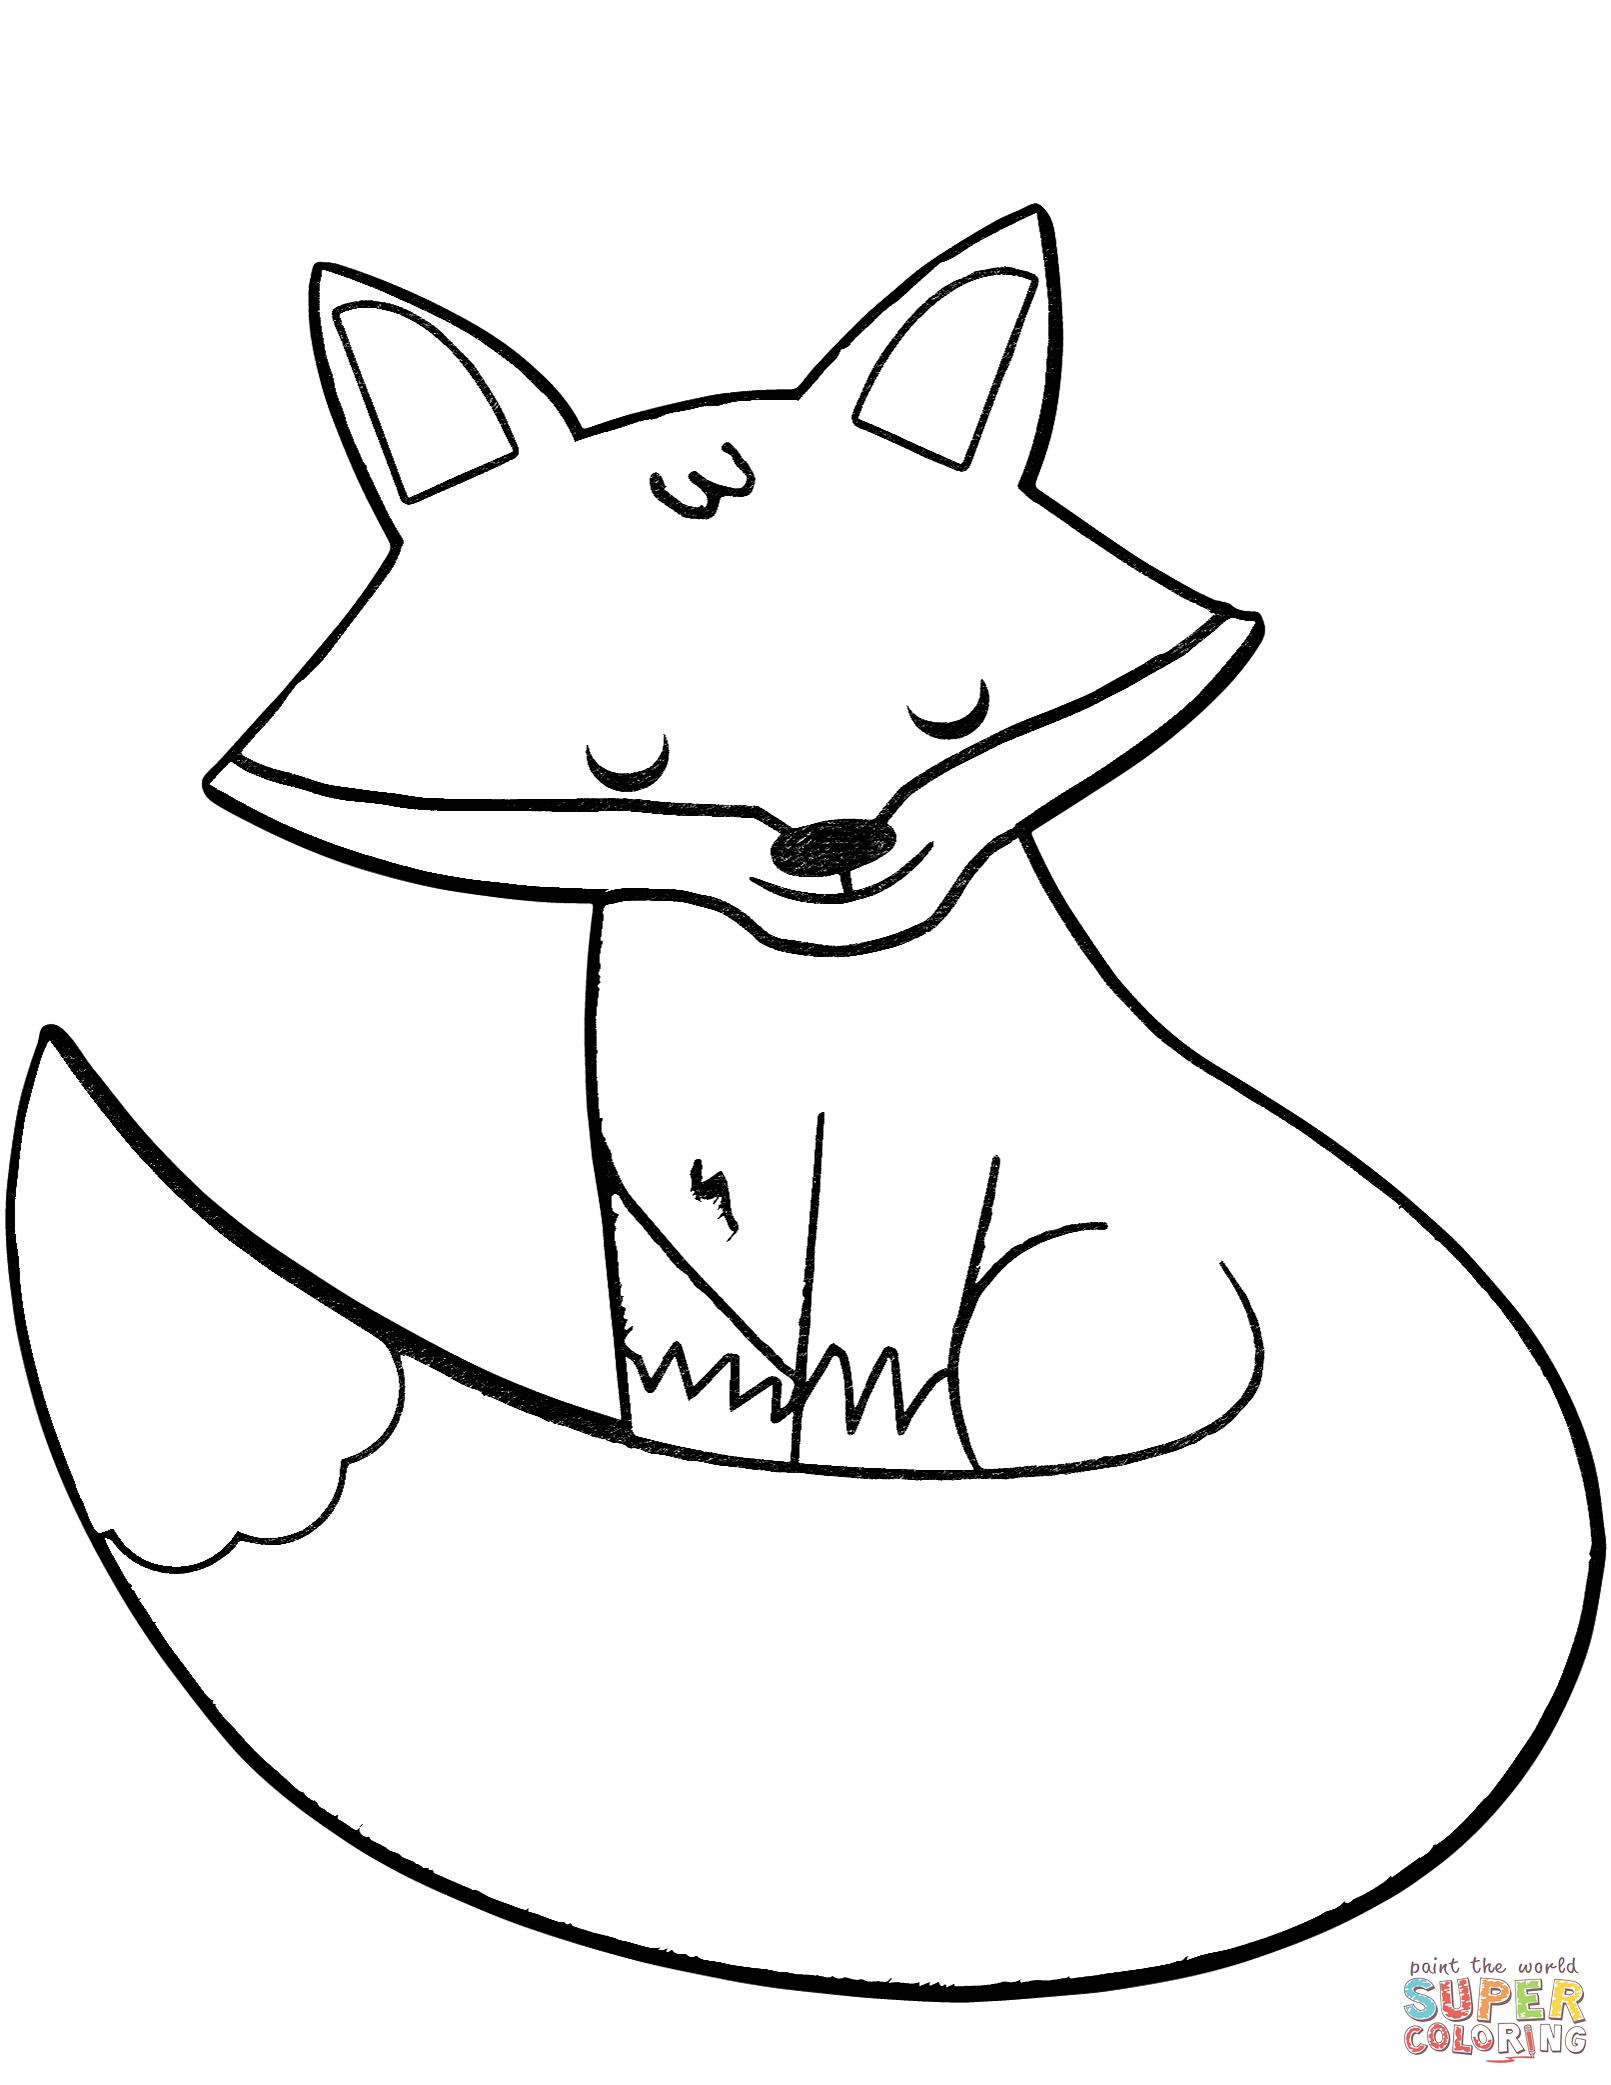 fox face coloring page coloring pages fox face animals gt fox free printable coloring page fox face